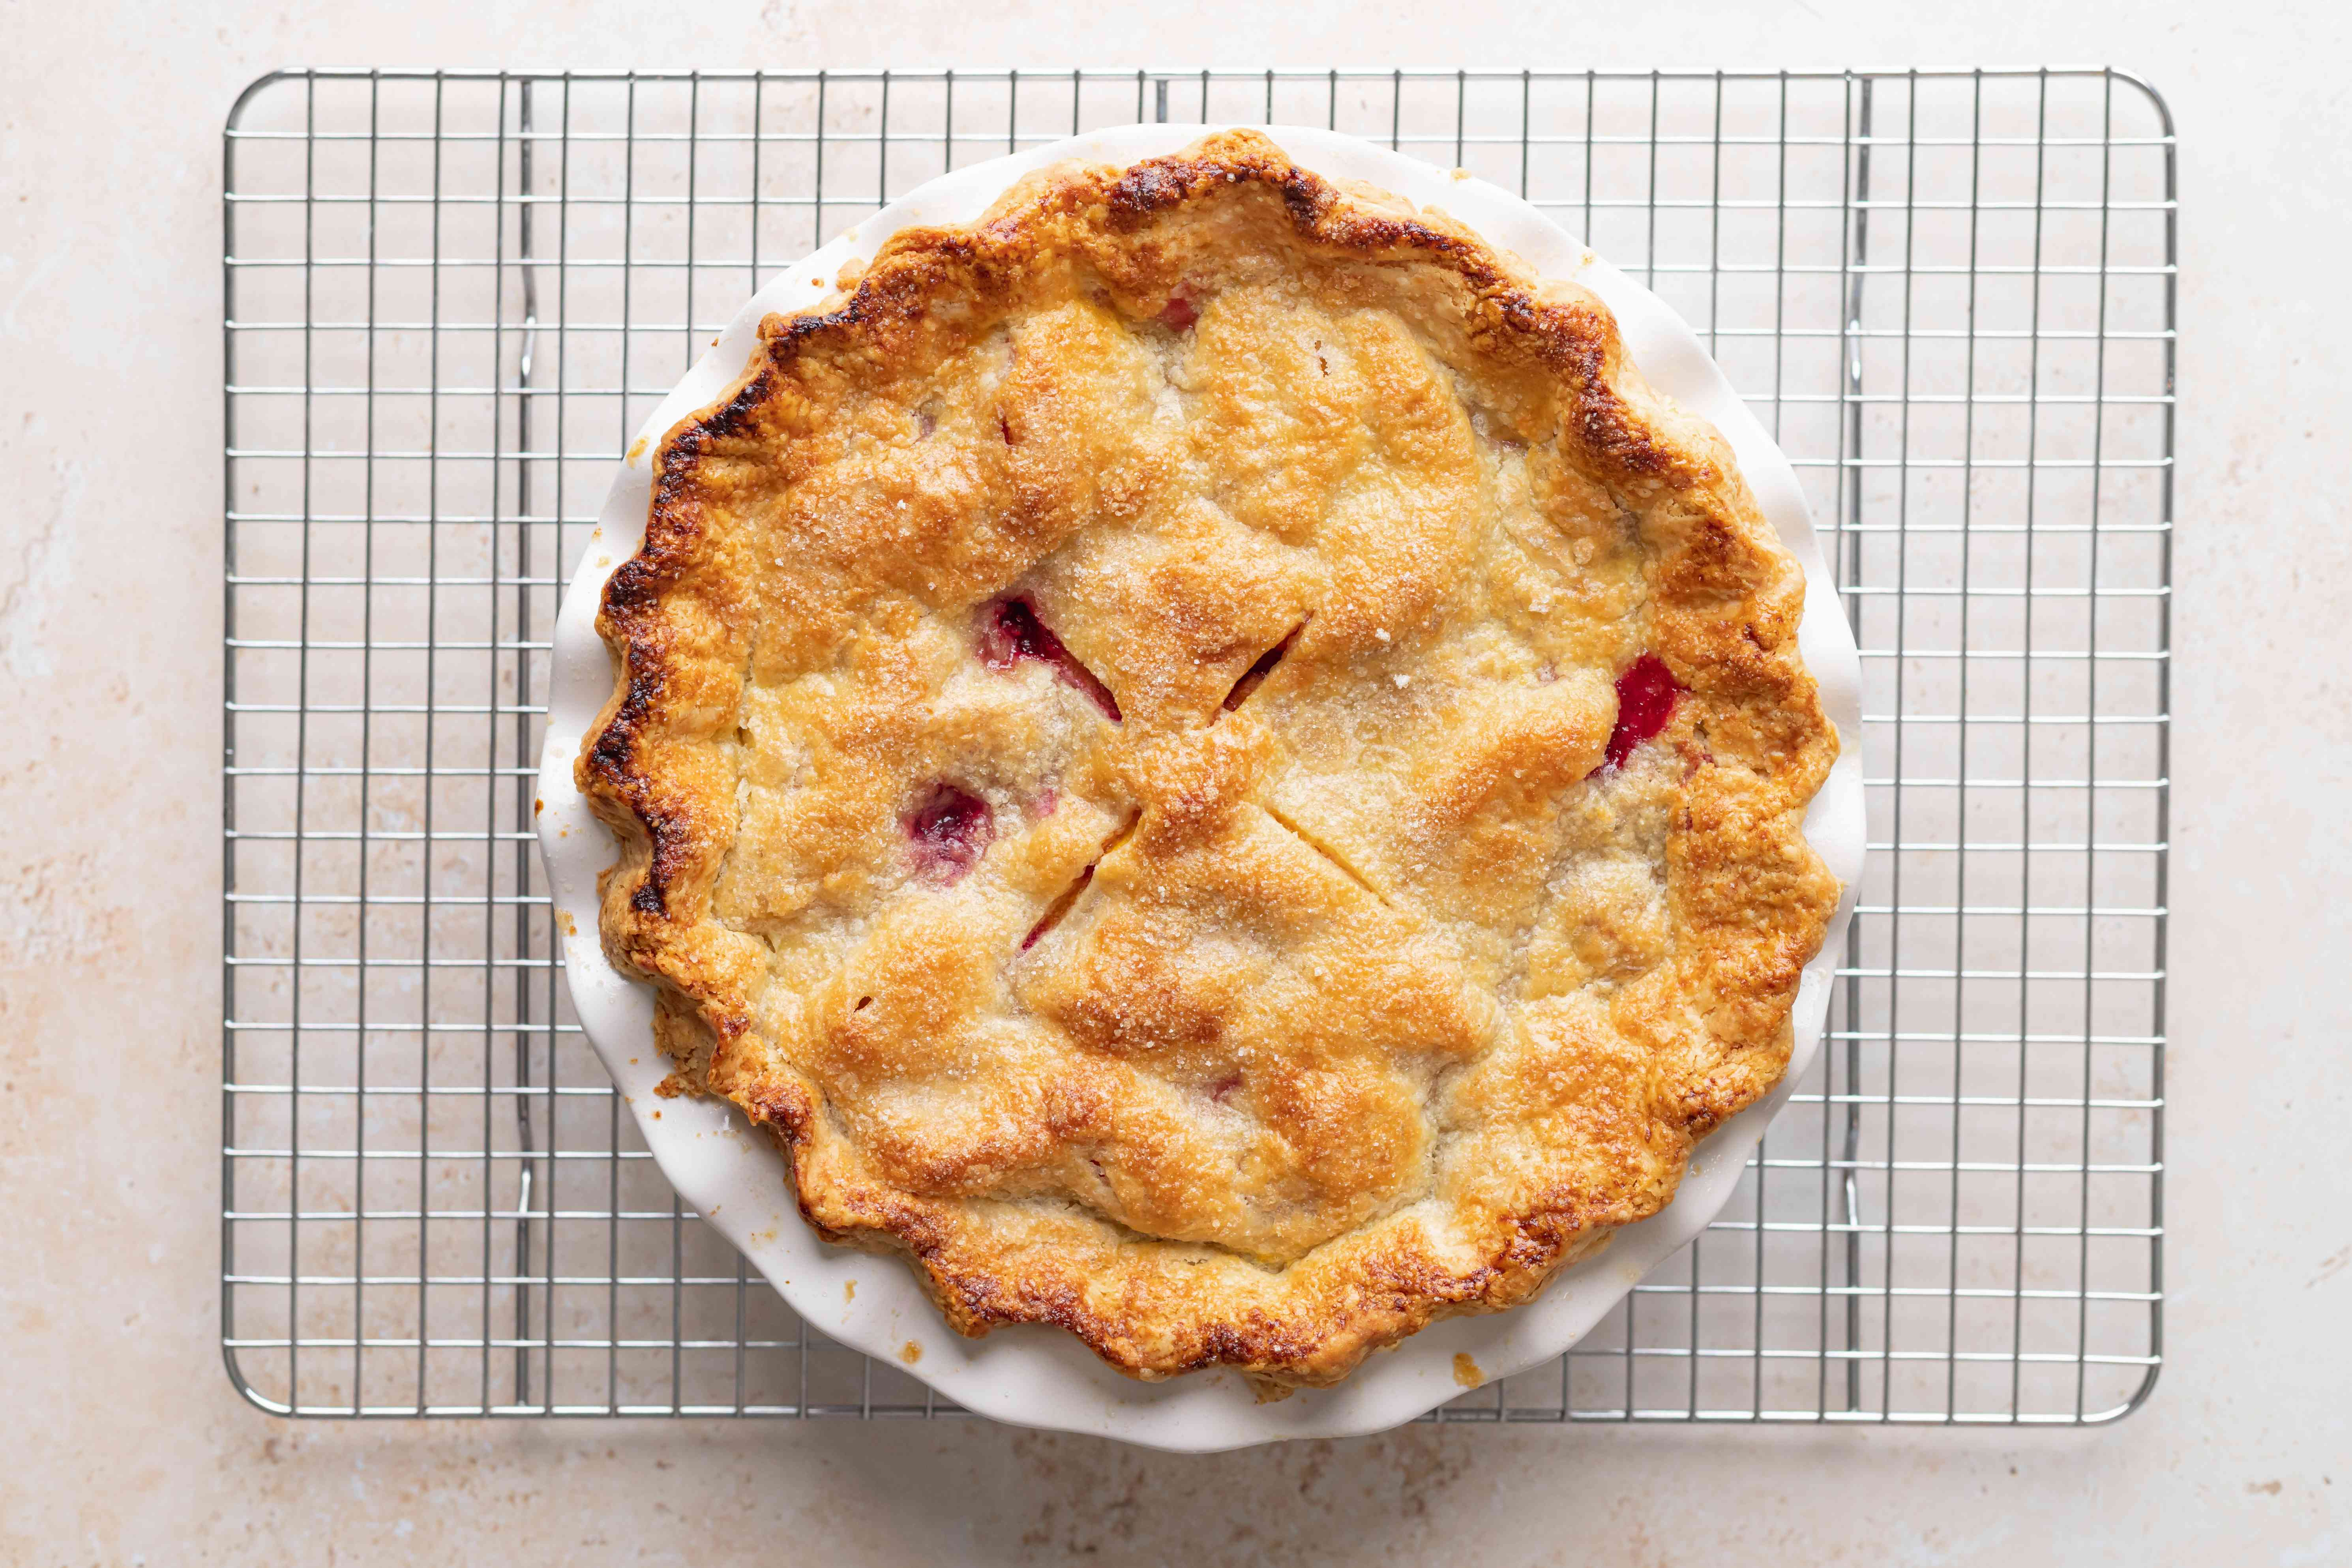 A stone fruit and berry pie cooling on a rack.